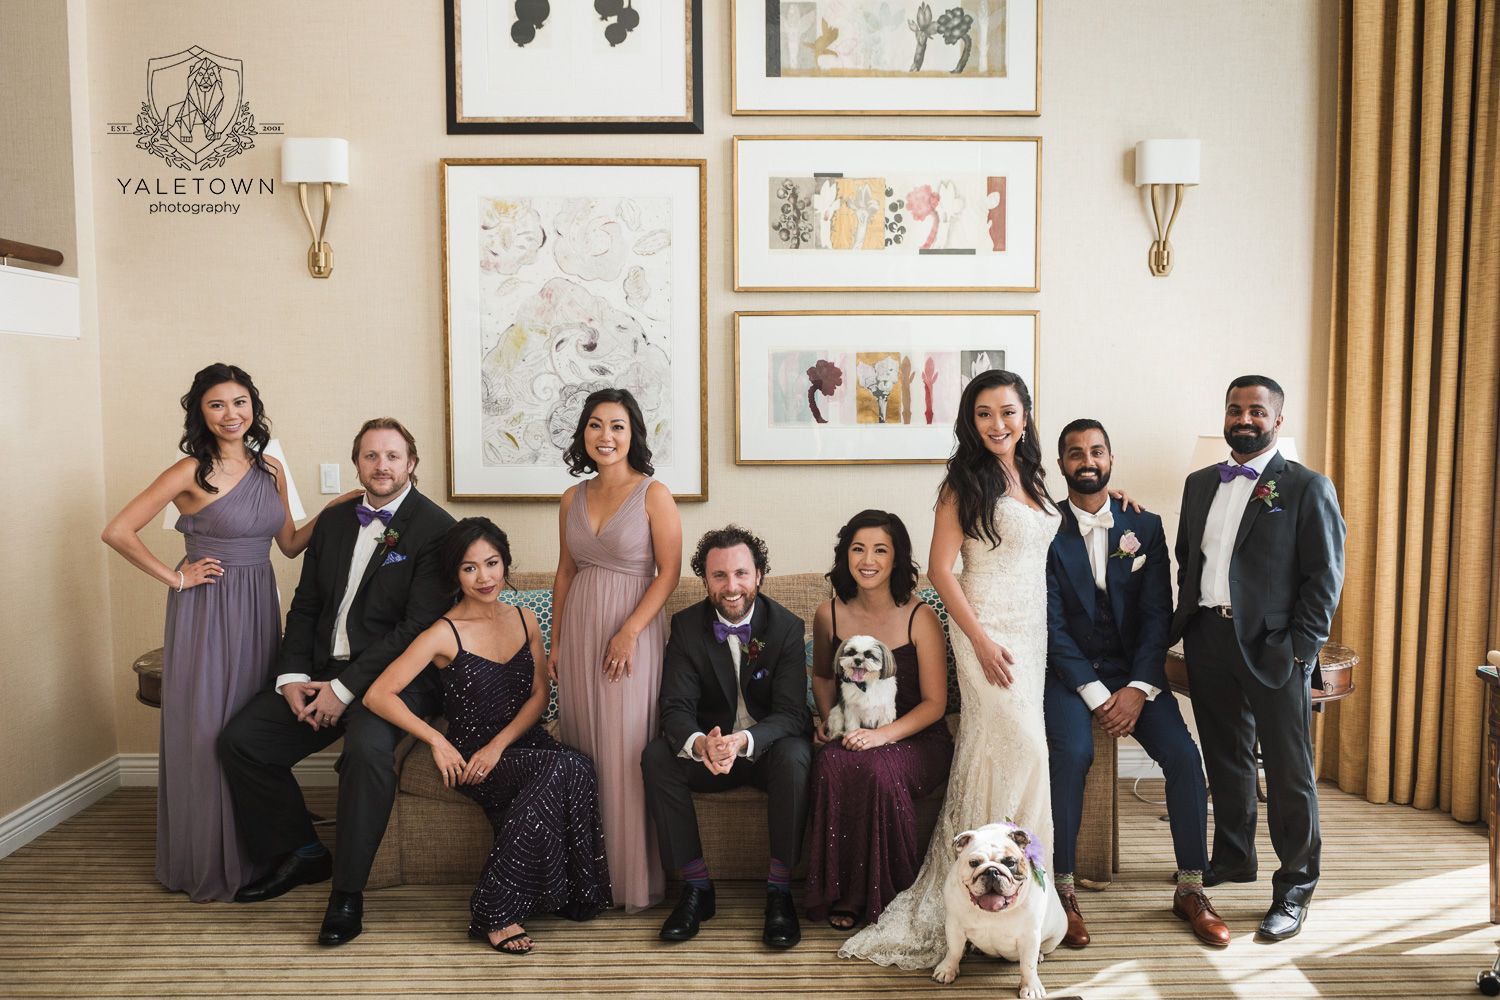 bridal-party-penthouse-suite-four-seasons-hotel-vancouver-wedding-yaletown-photography-photo-22.jpg